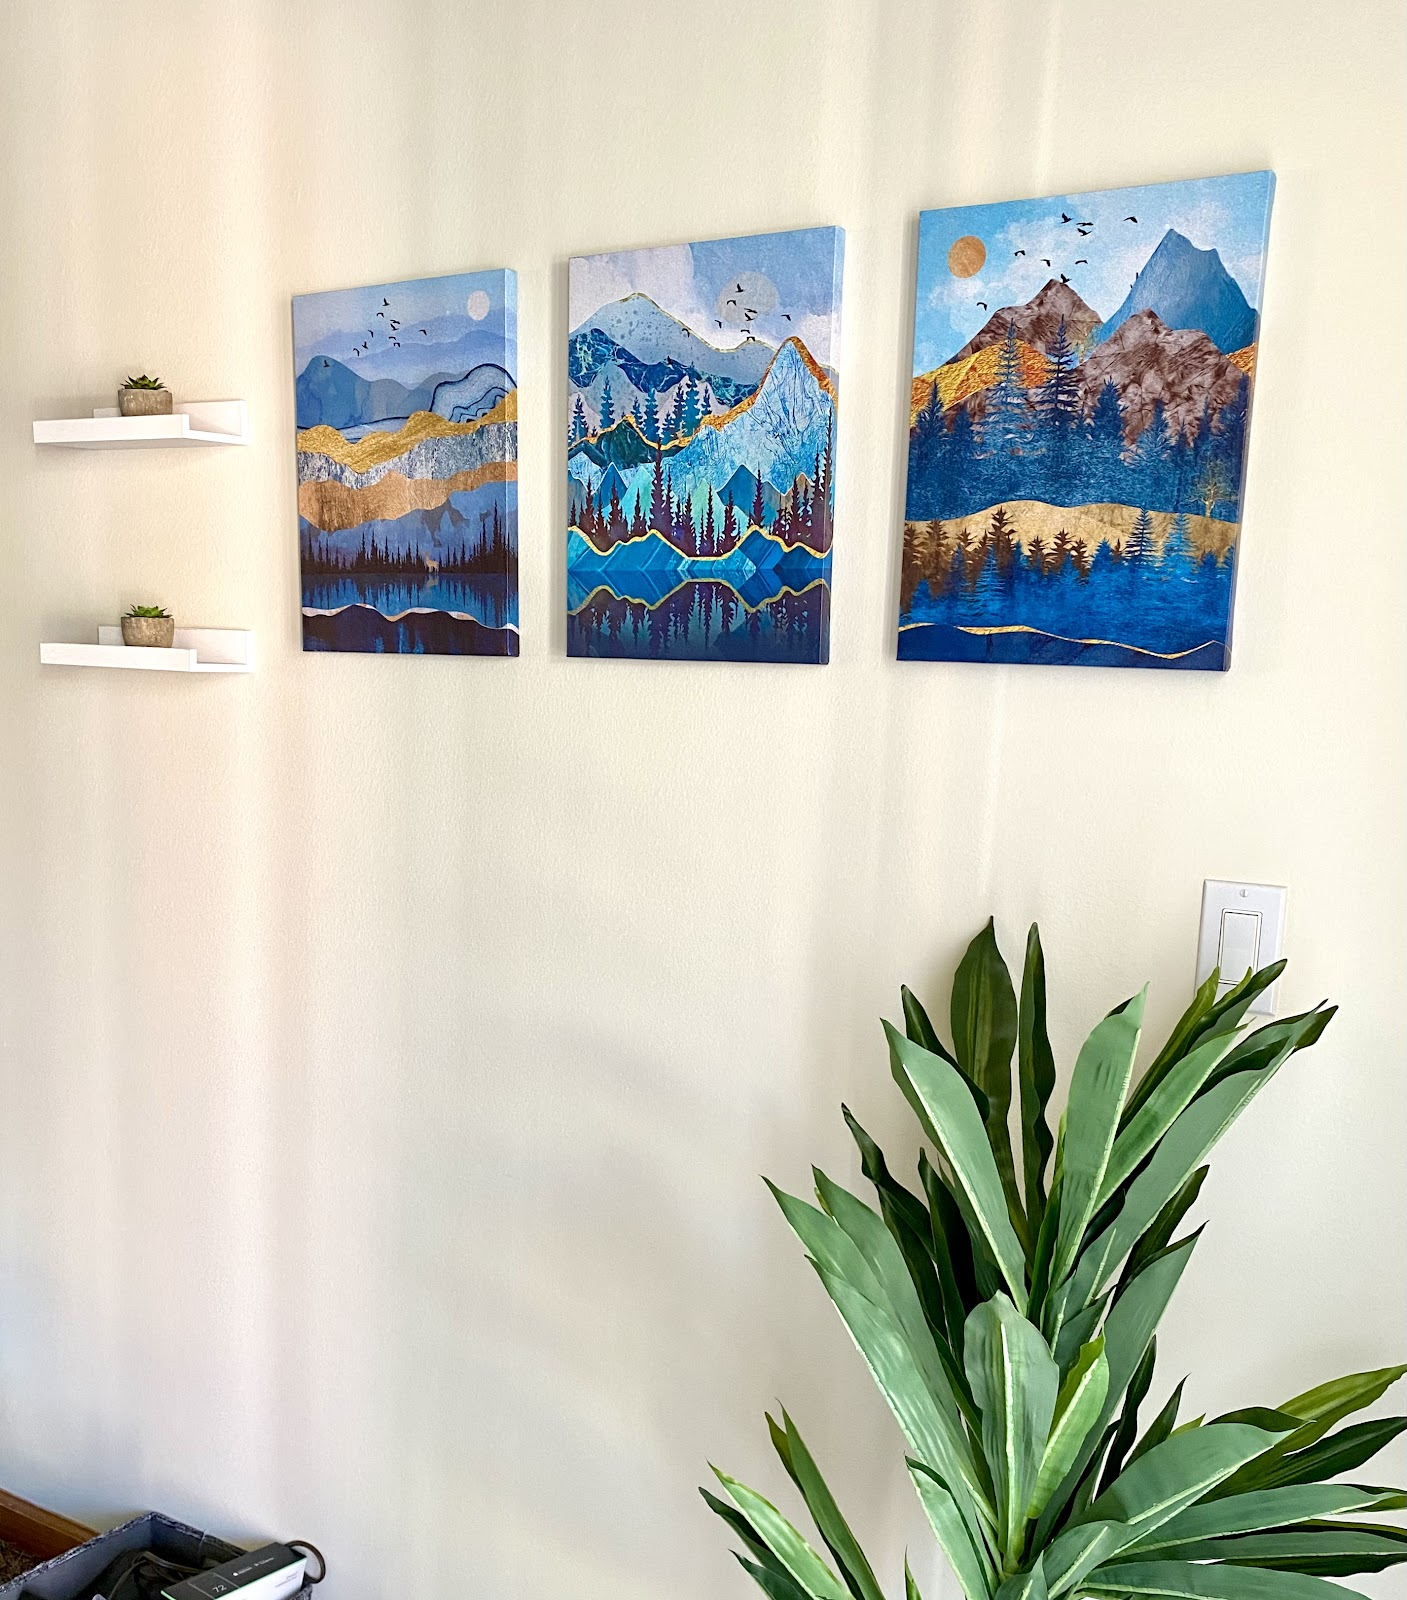 minimalist home decor featuring mountain panel paintings and plants on shelves